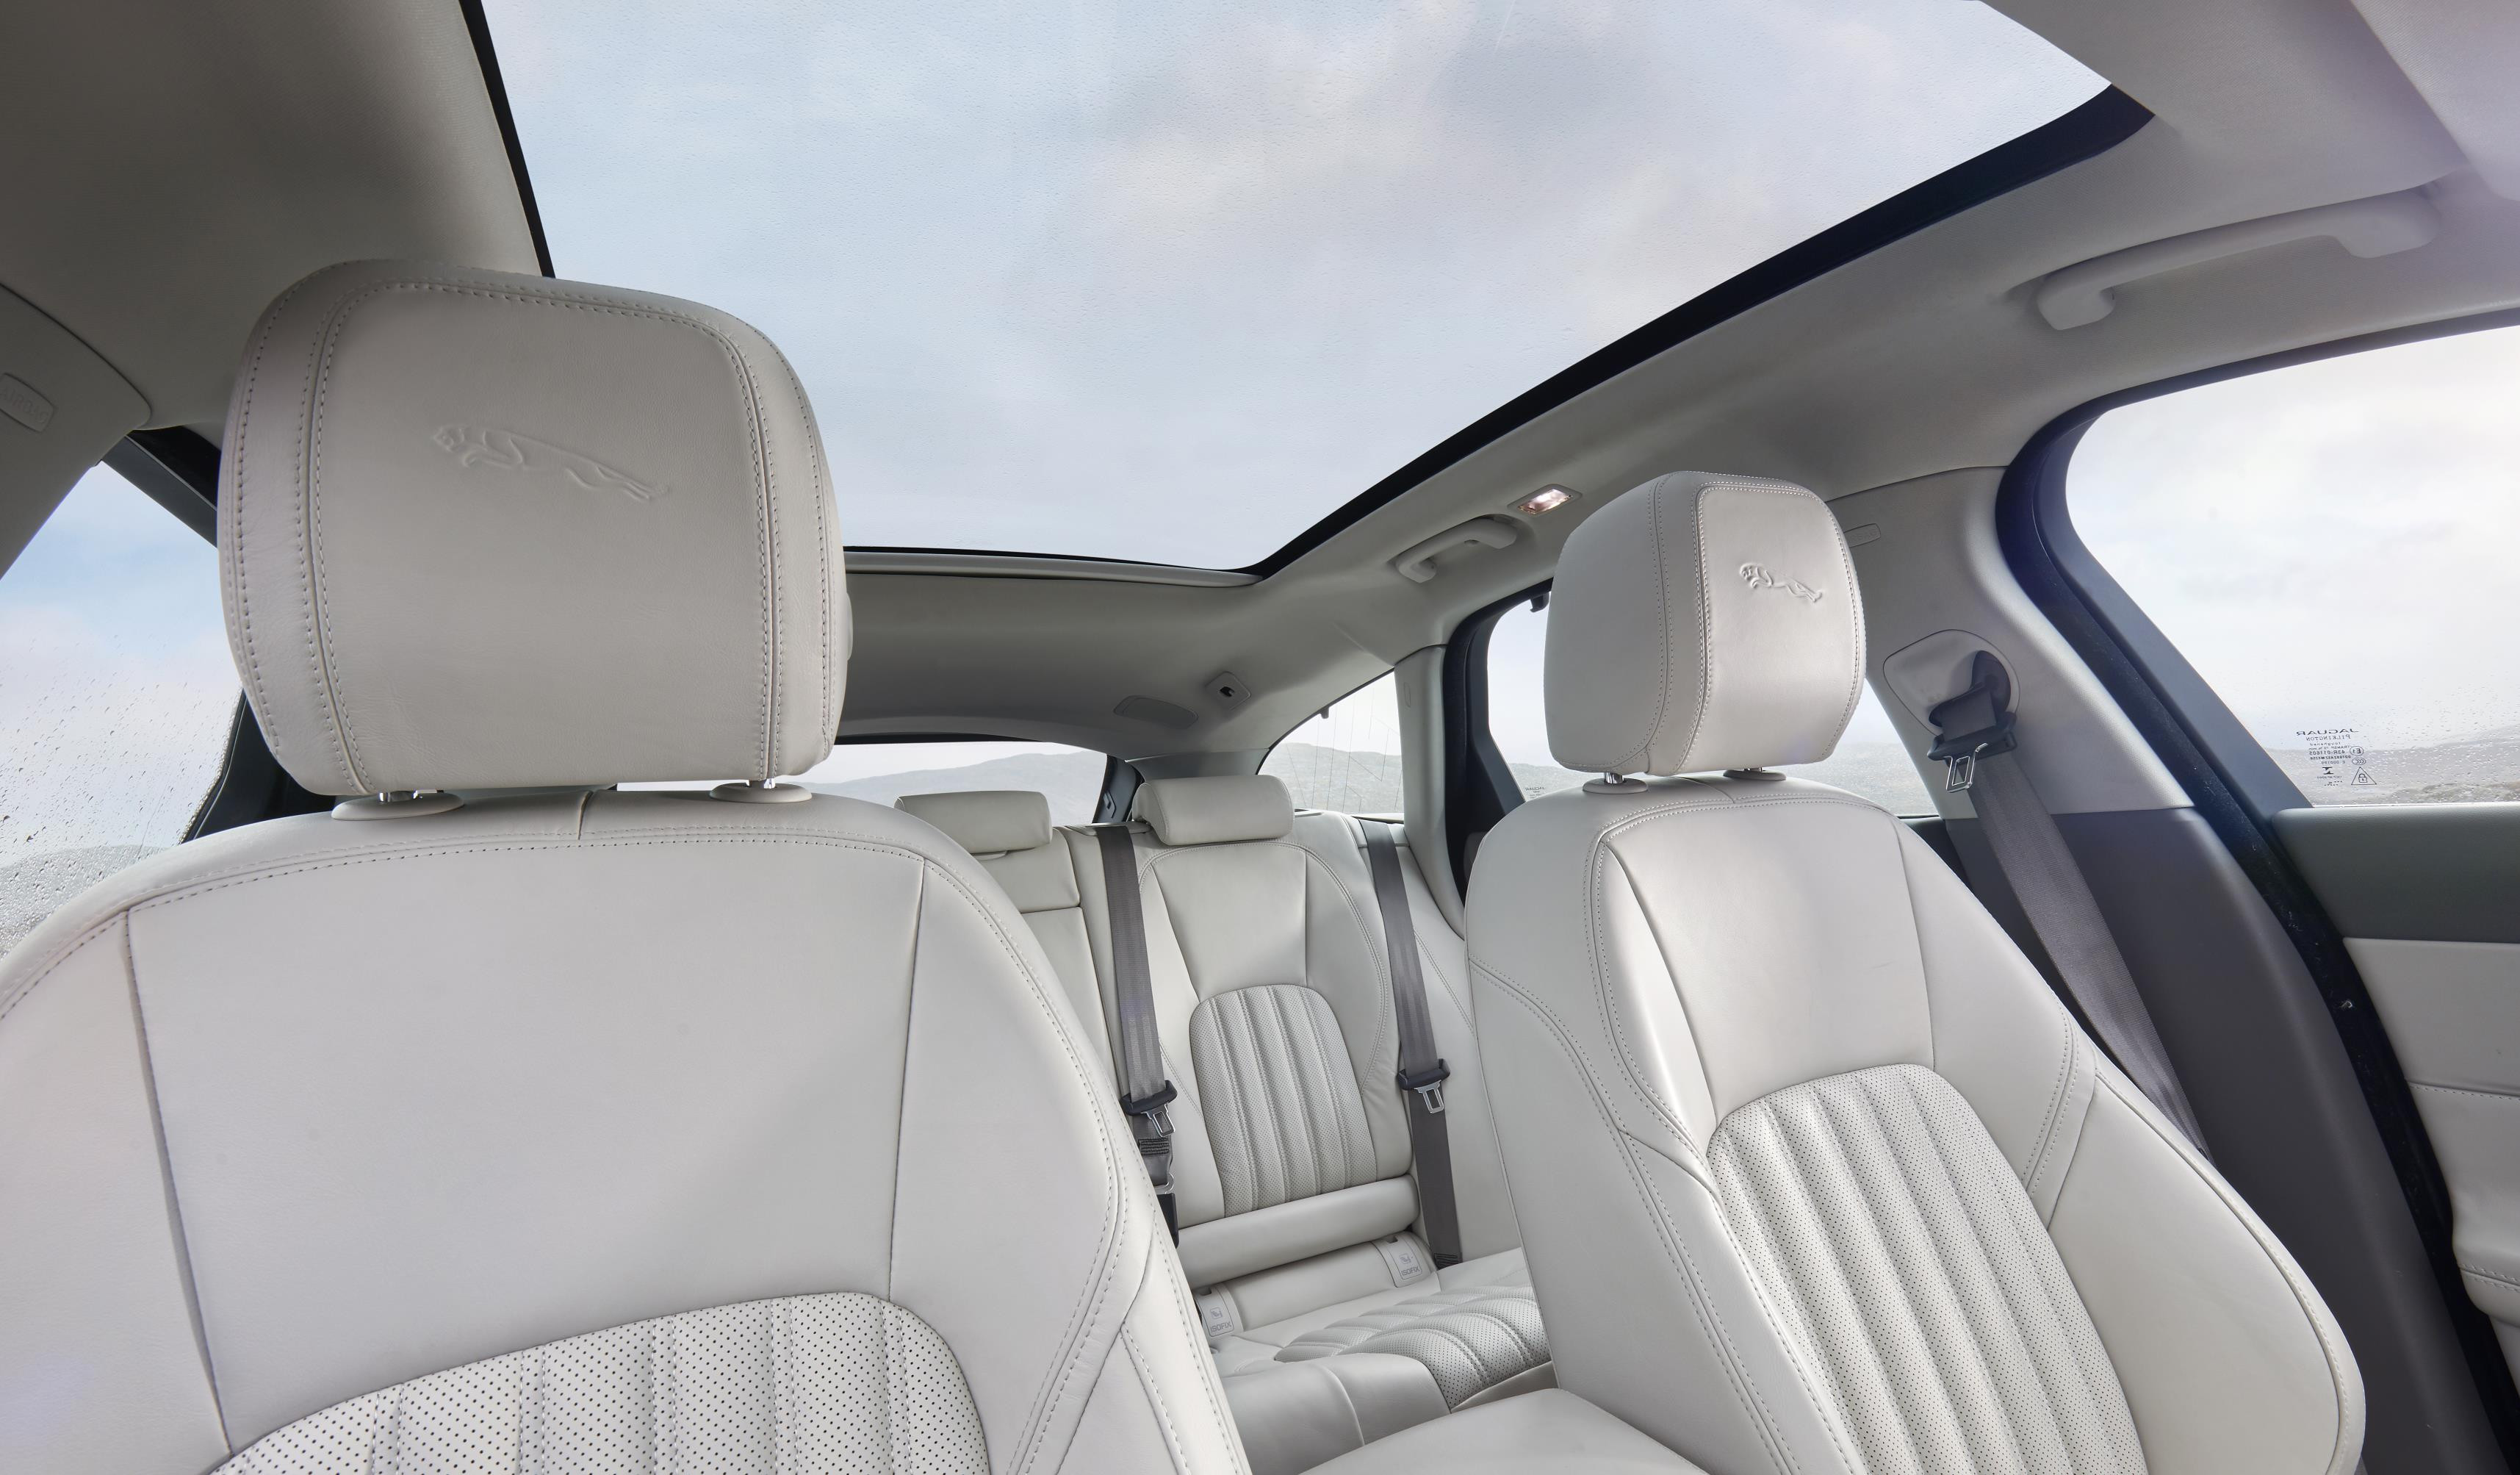 Cream leather interior of Jaguar XF Sportbrake